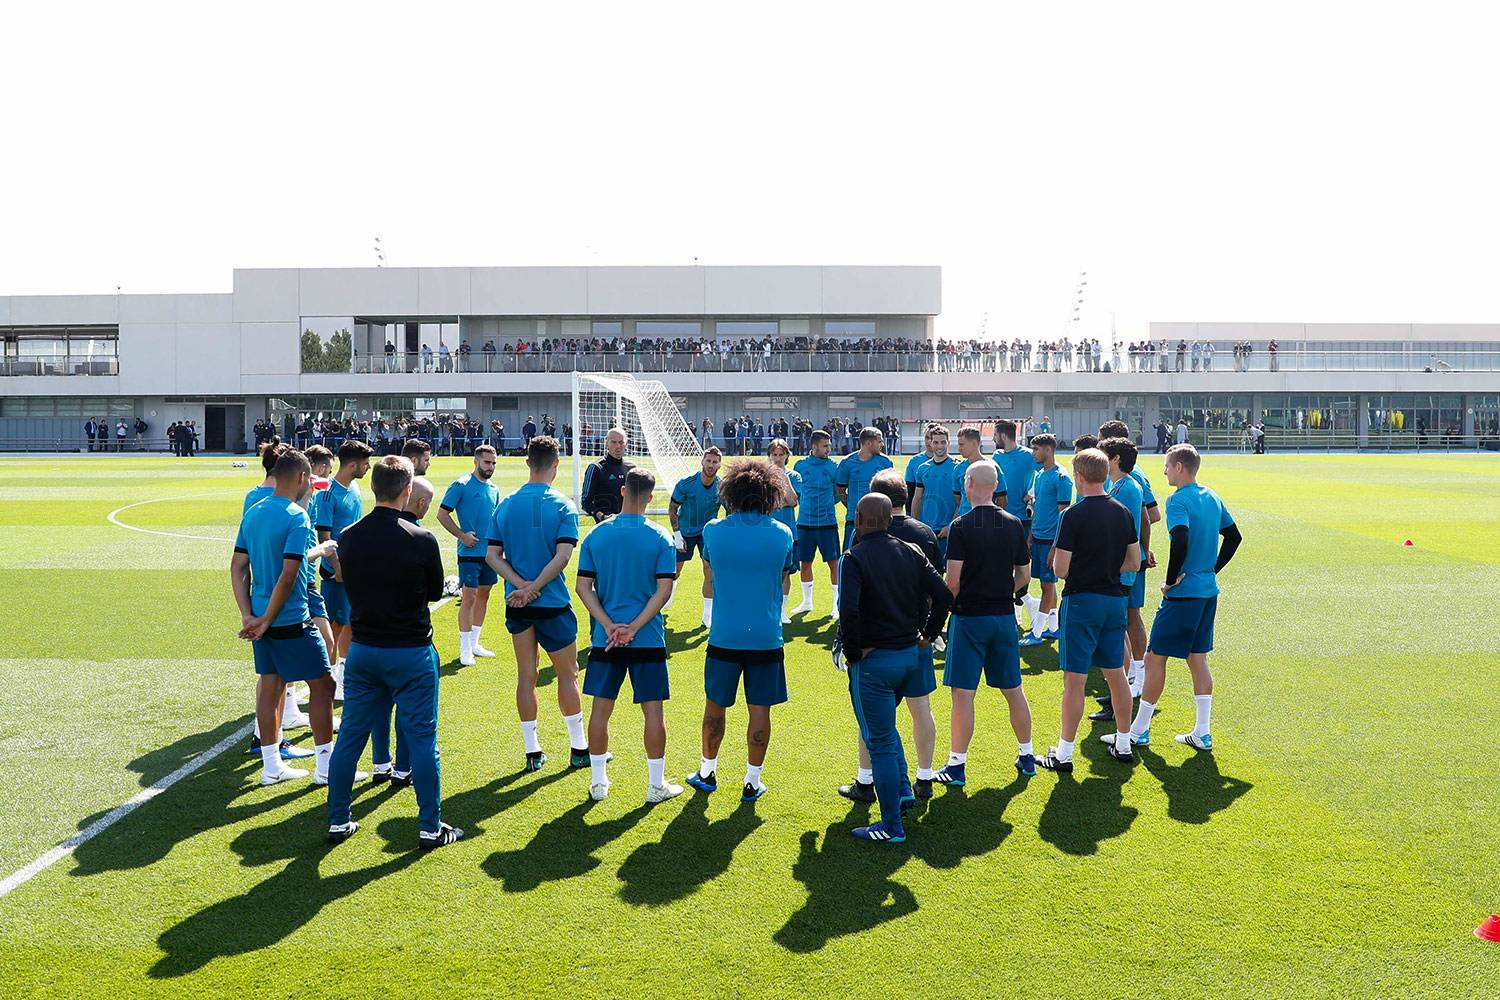 Real Madrid - Entrenamiento del Real Madrid - 22-05-2018